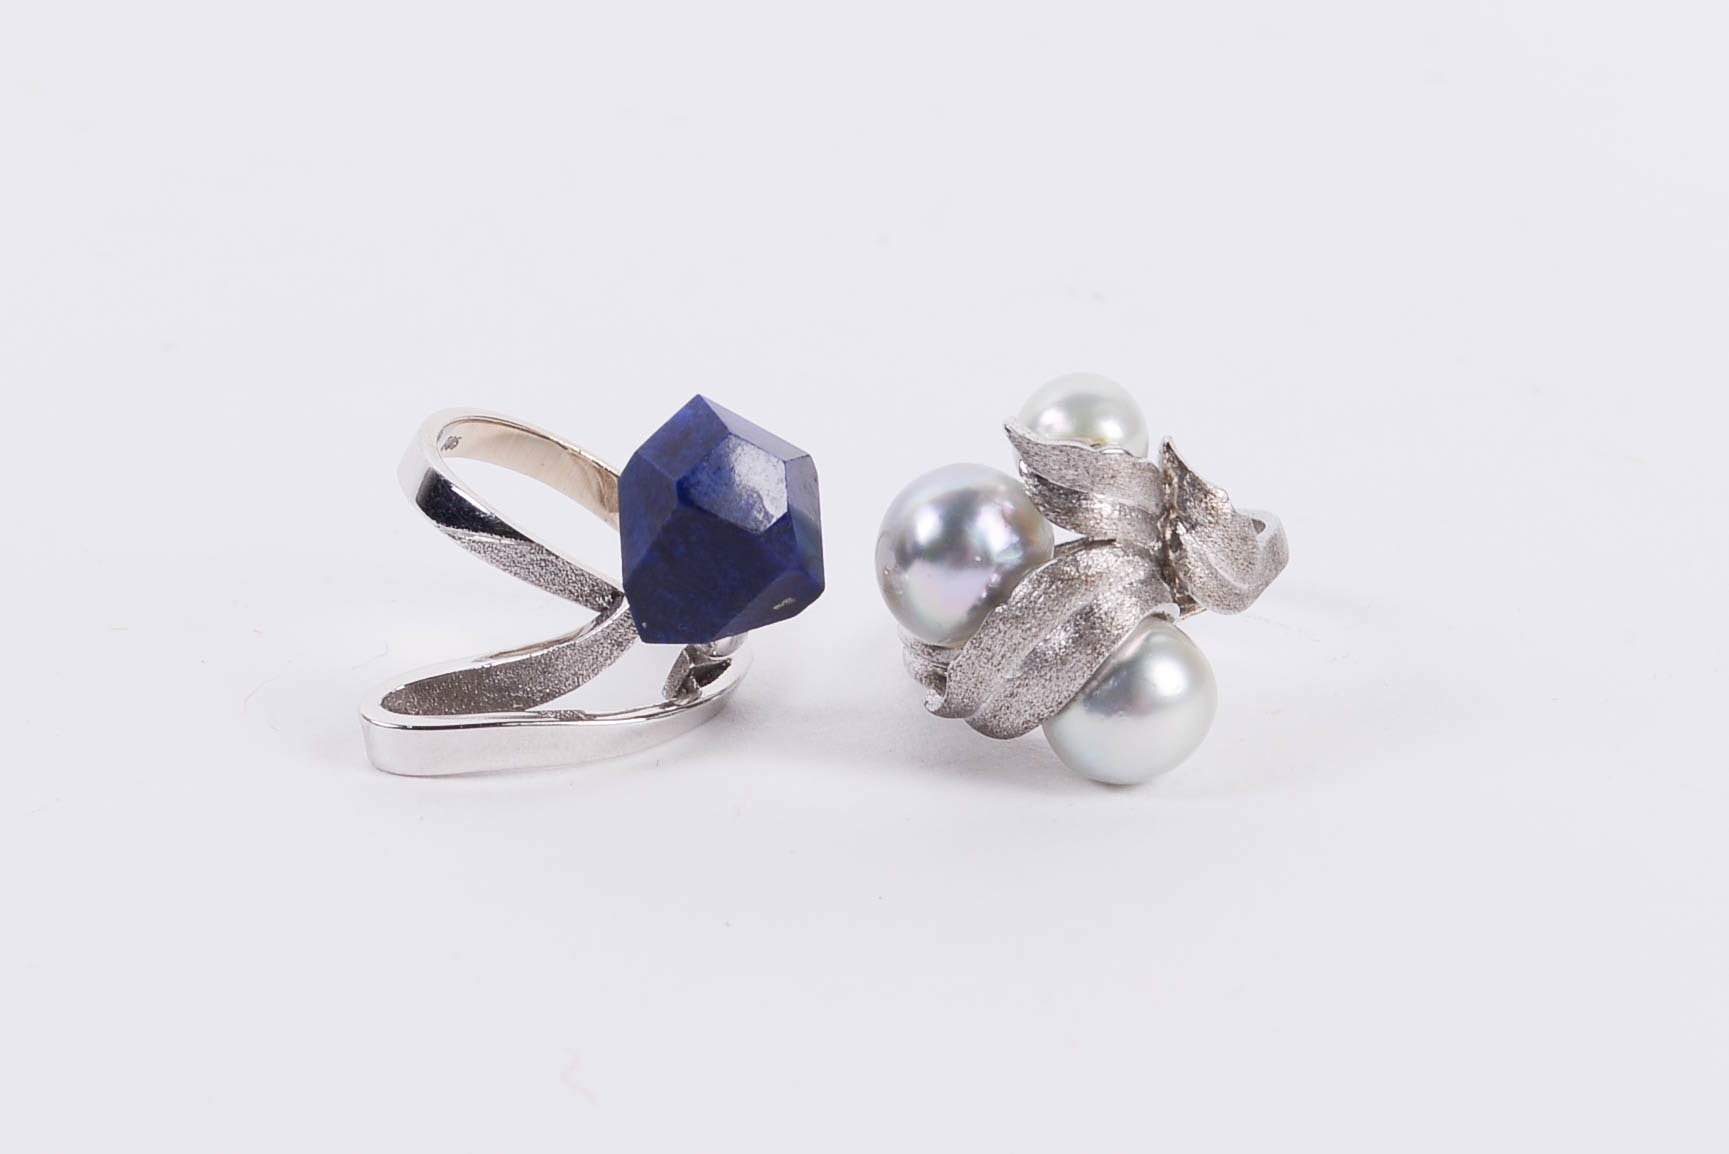 Sterling Silver Ring with Freshwater Pearls and 14K White Gold Ring with Lapis Lazuli